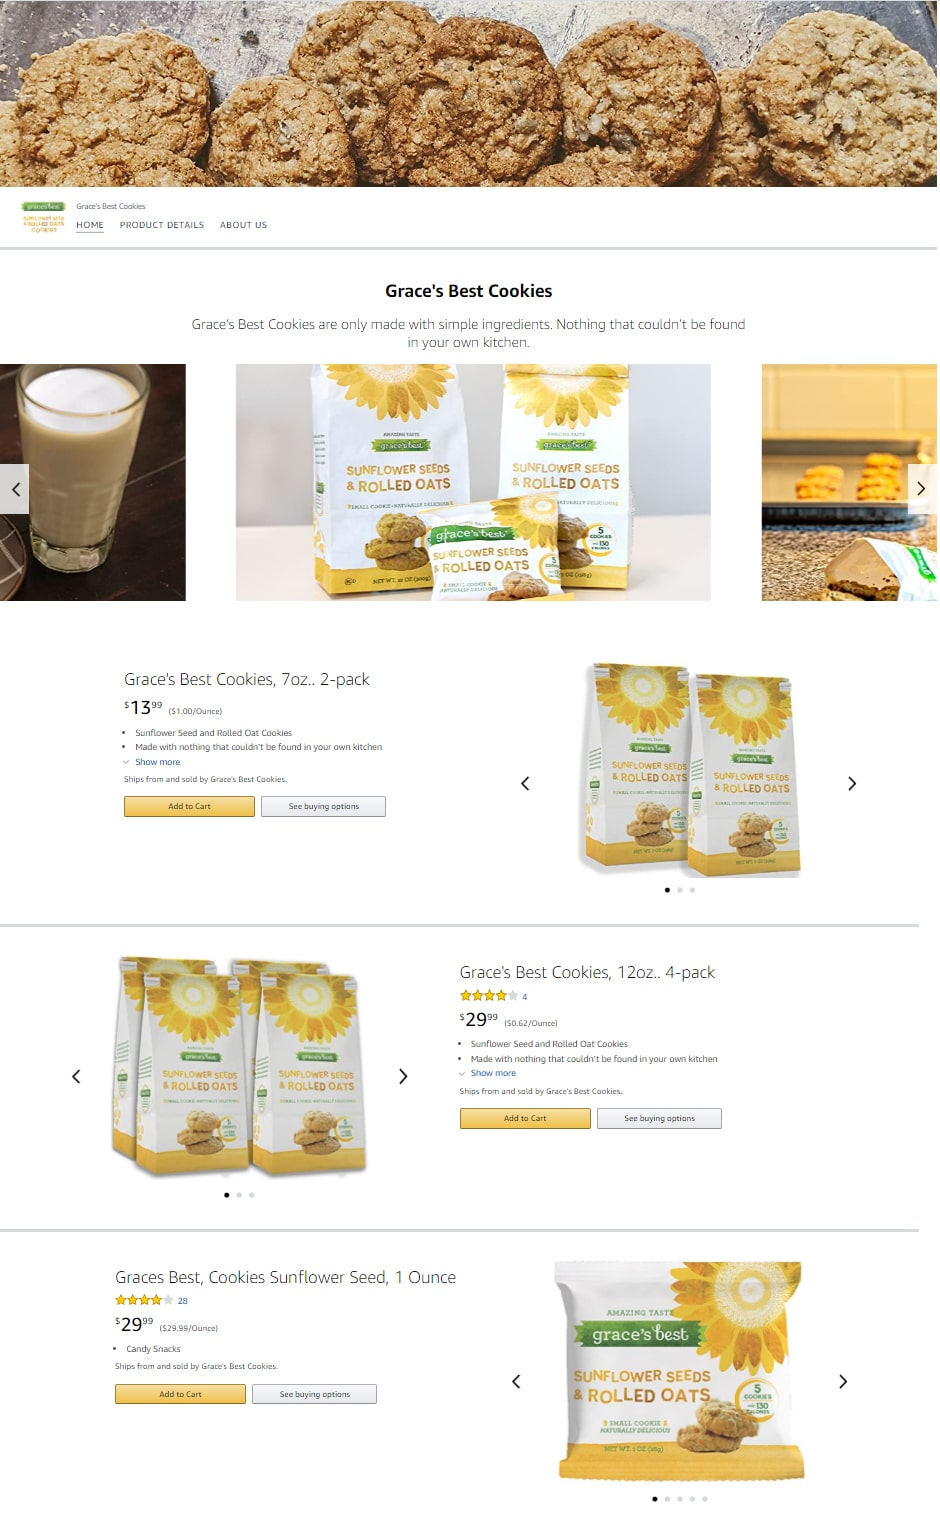 Grace's Best Cookies Amazon storefront